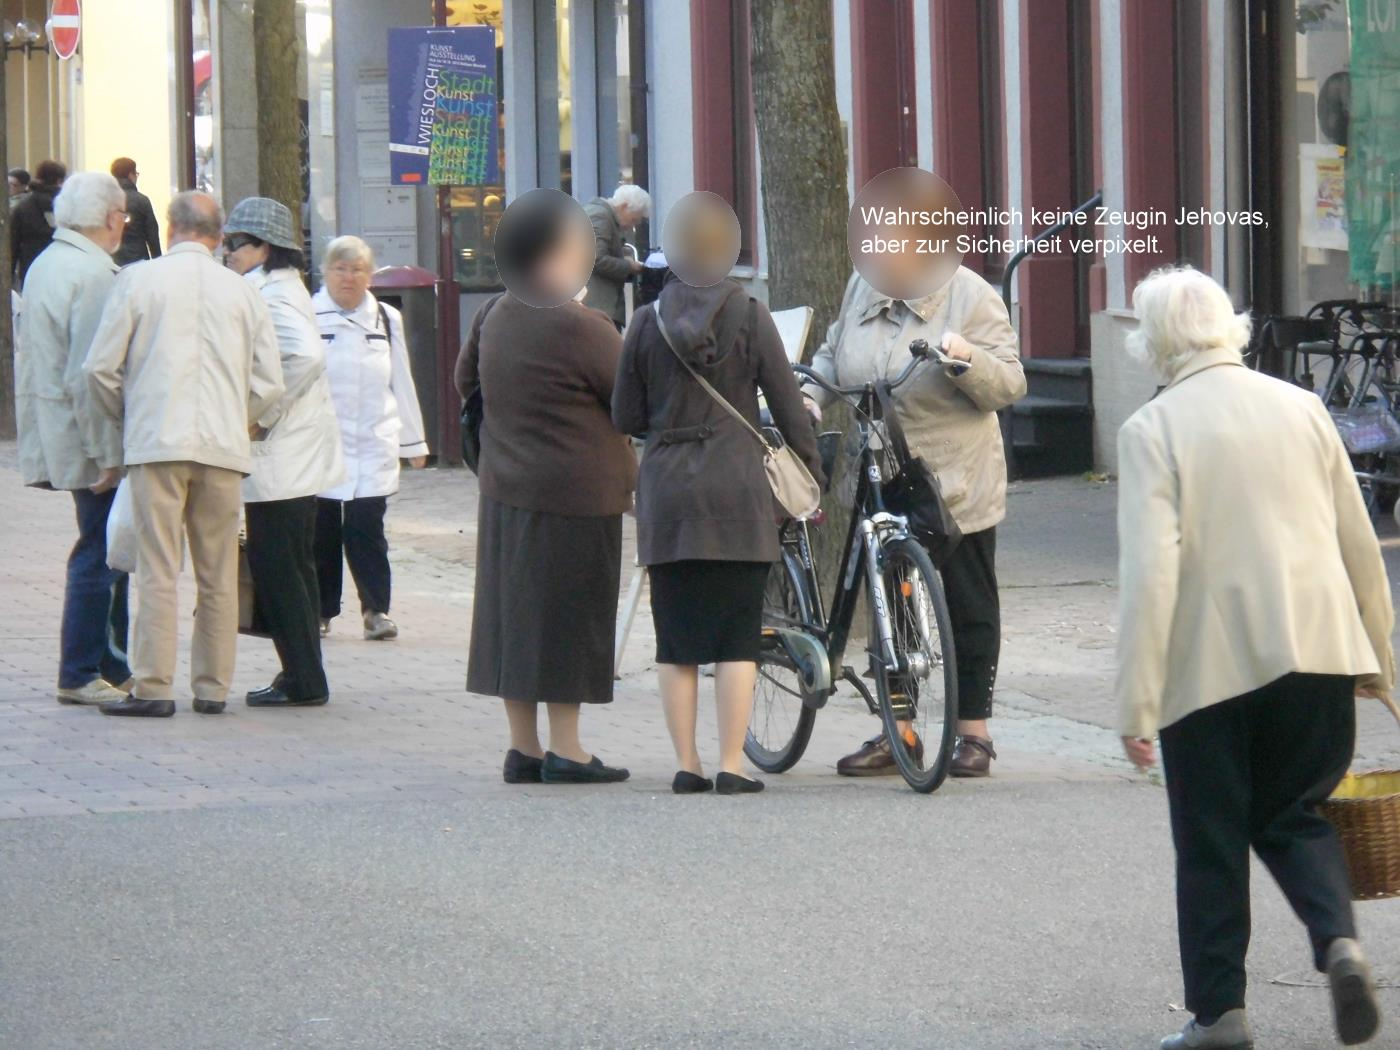 After seven minutes, Jehovah's Witnesses are gone